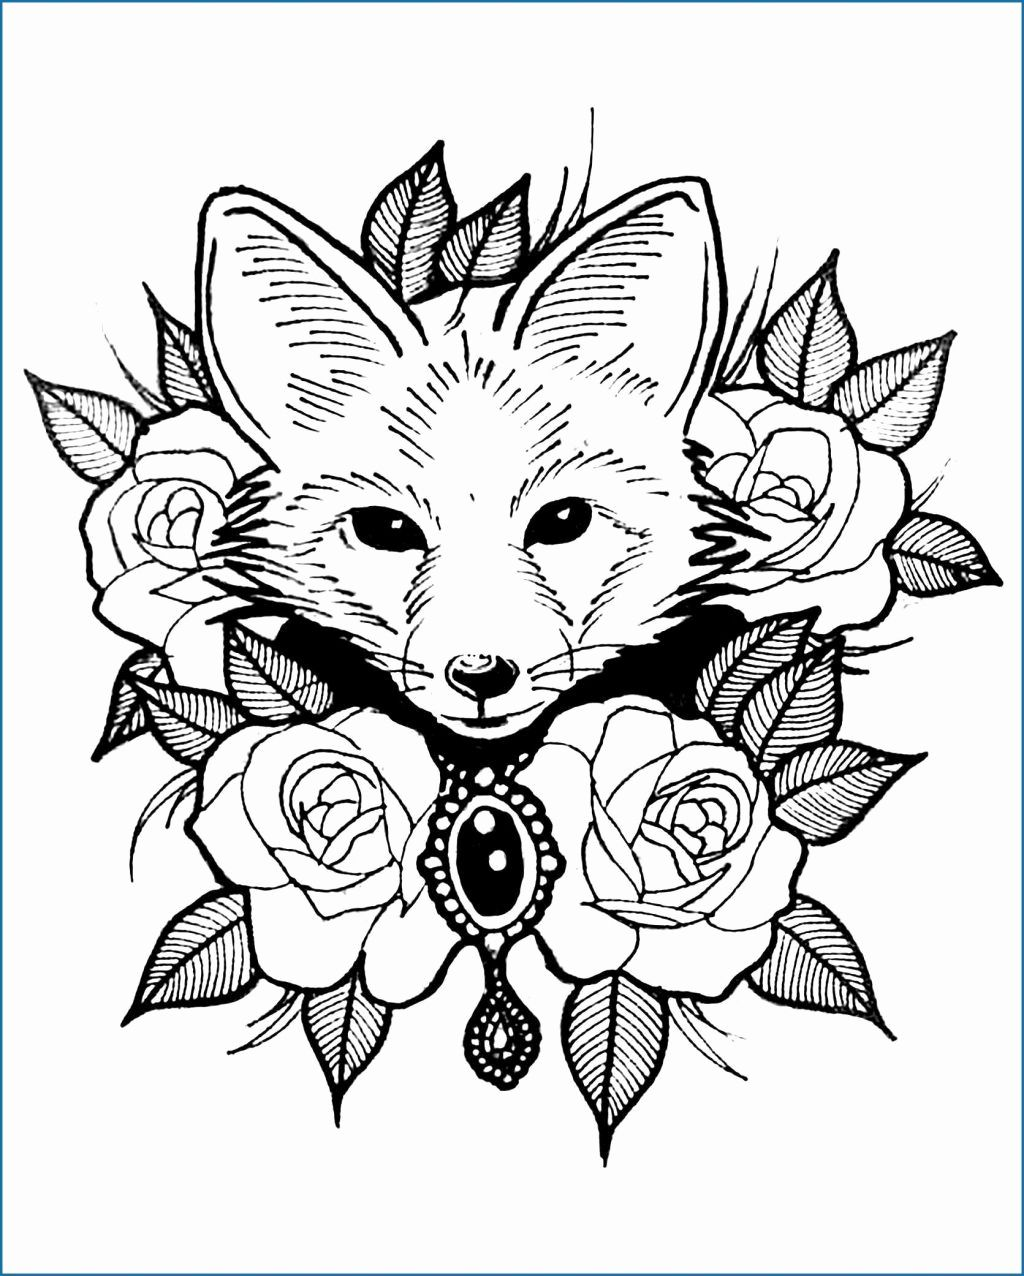 Cool Animal Coloring Pages For Kids In 2020 Zoo Animal Coloring Pages Fox Coloring Page Animal Coloring Books